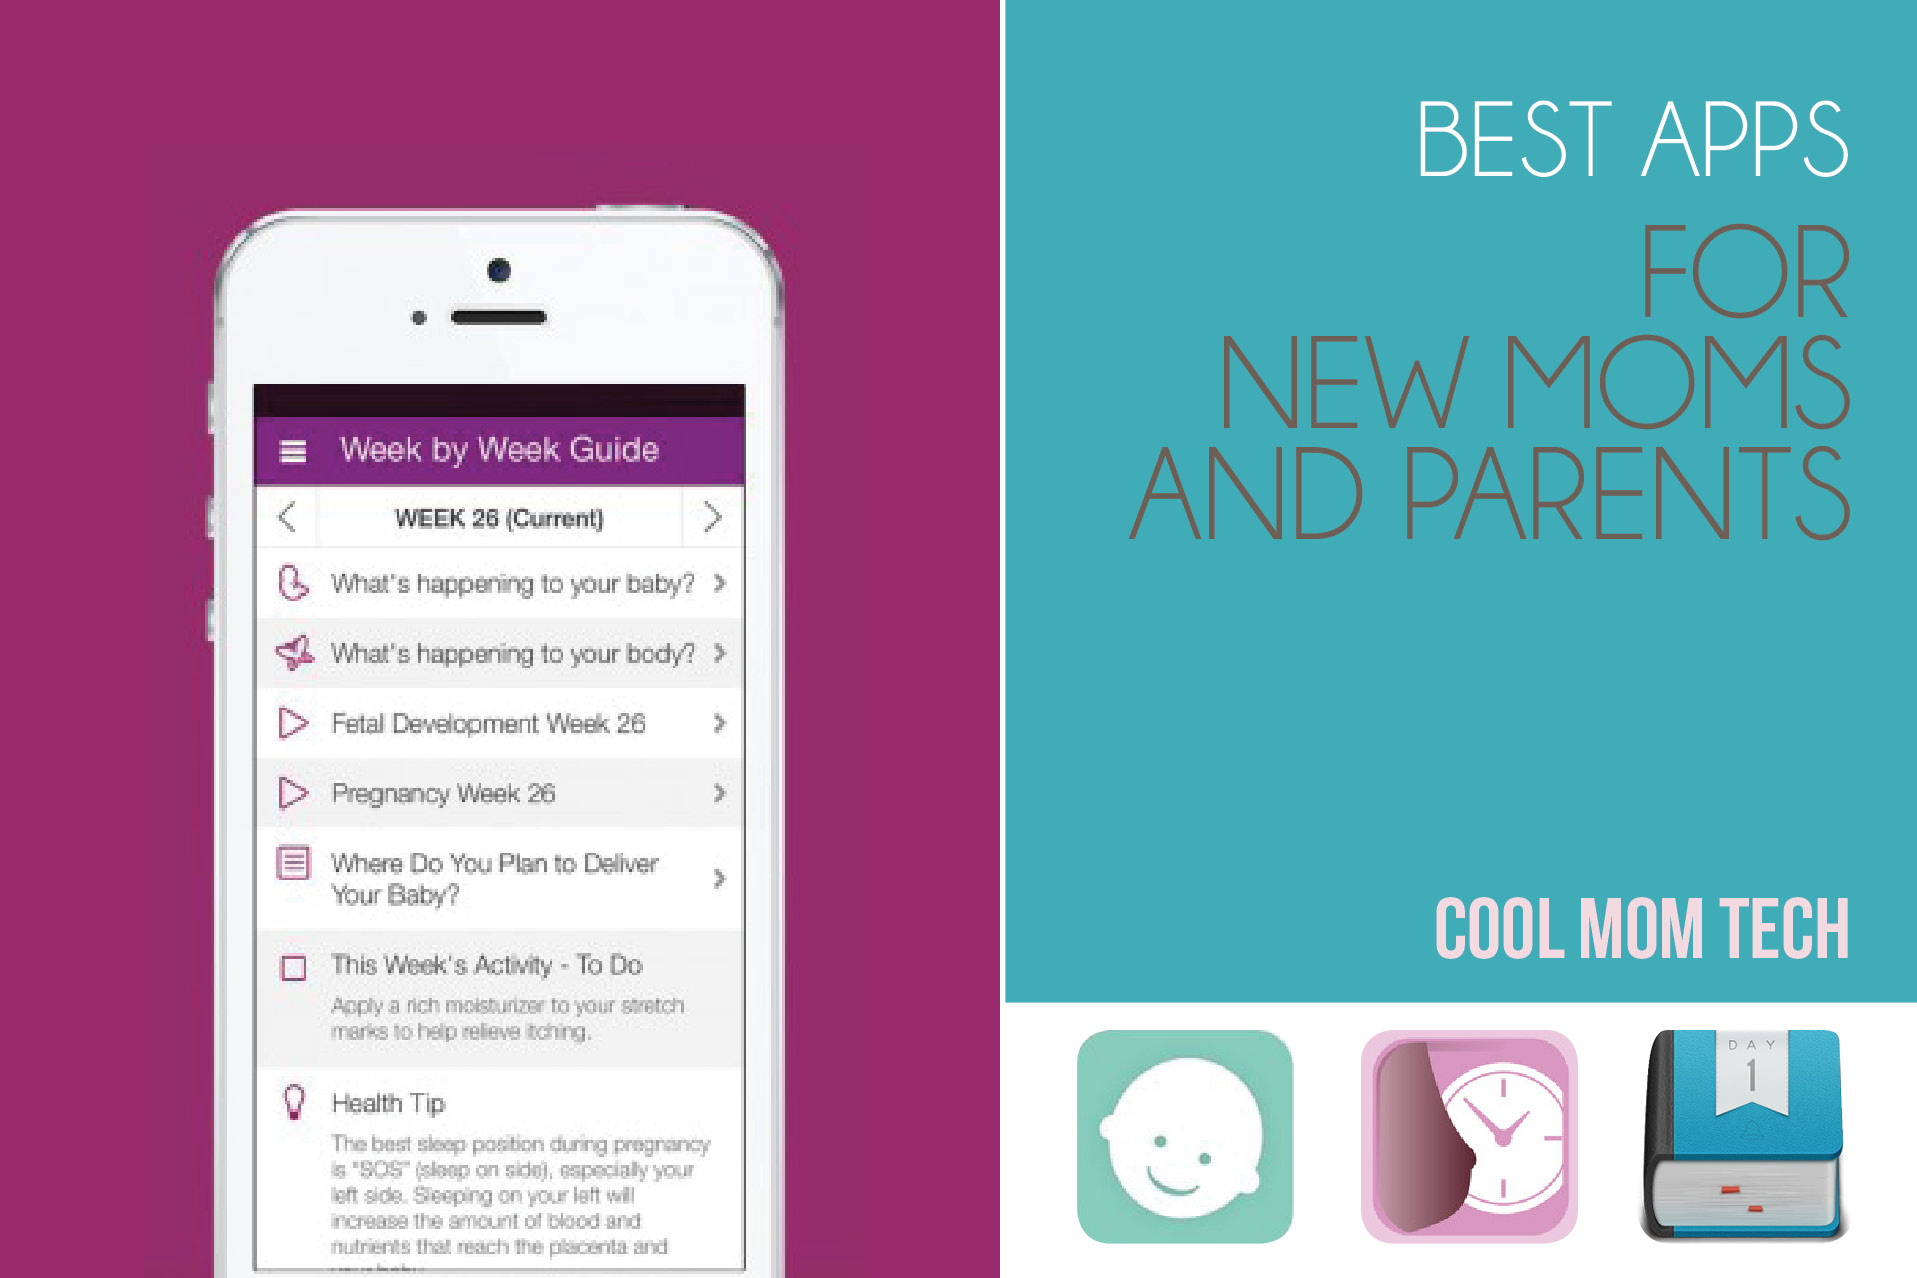 Moms Best 10 Of The Best Apps For New Moms And Parents Cool Mom Tech